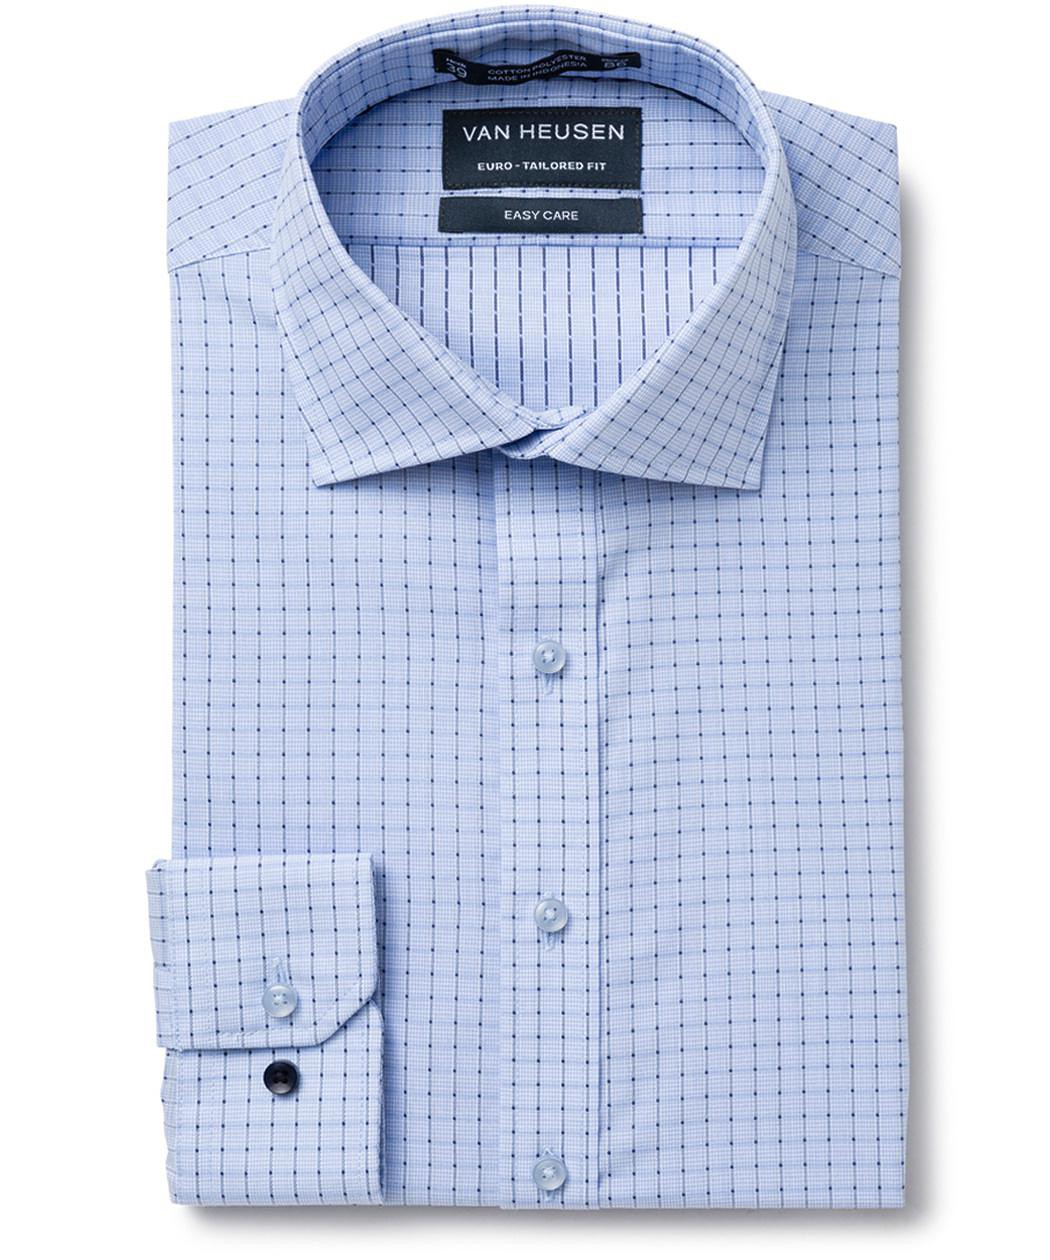 693c4bb5a7 Buy a Van Heusen Euro Tailored Fit Shirt Blue Connect Check from ...